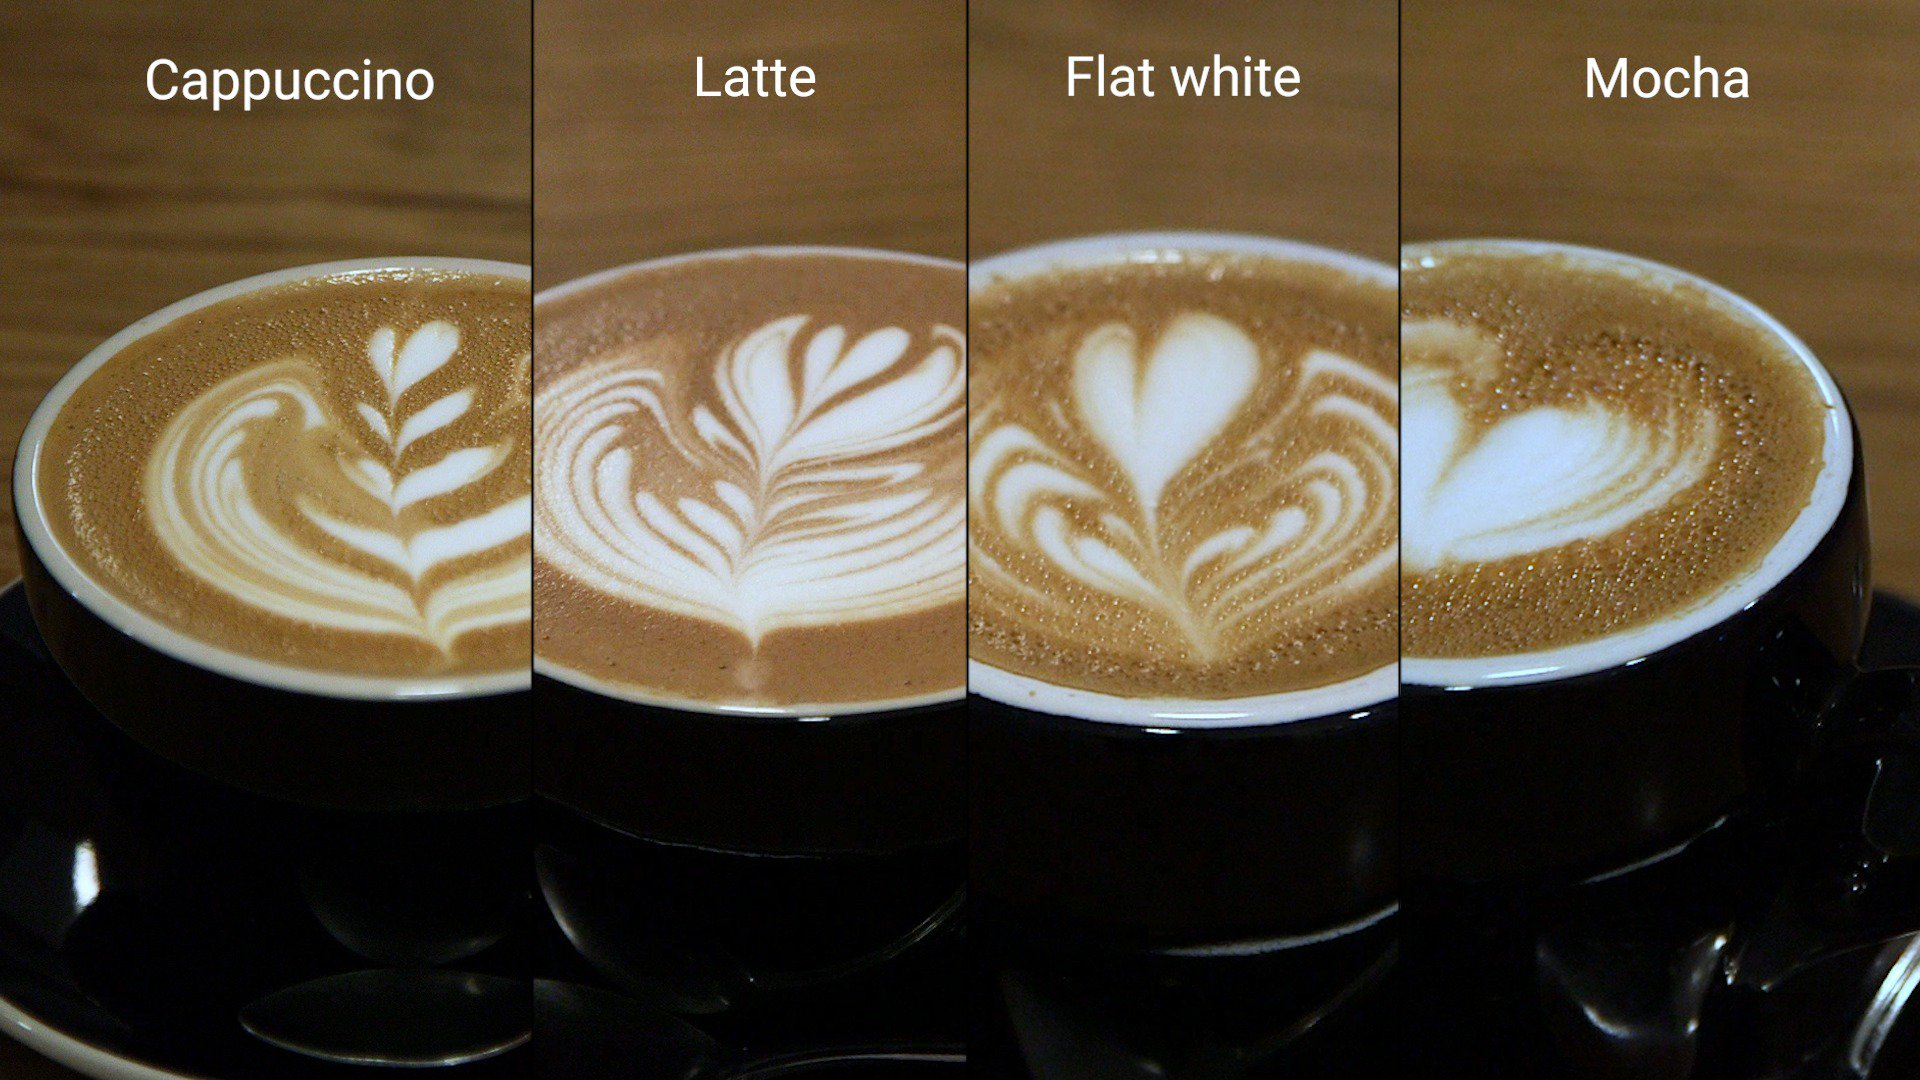 Flat white or latte? Here are all the big differences between some of the most popular coffee drinks https://t.co/j46RkelY3Y